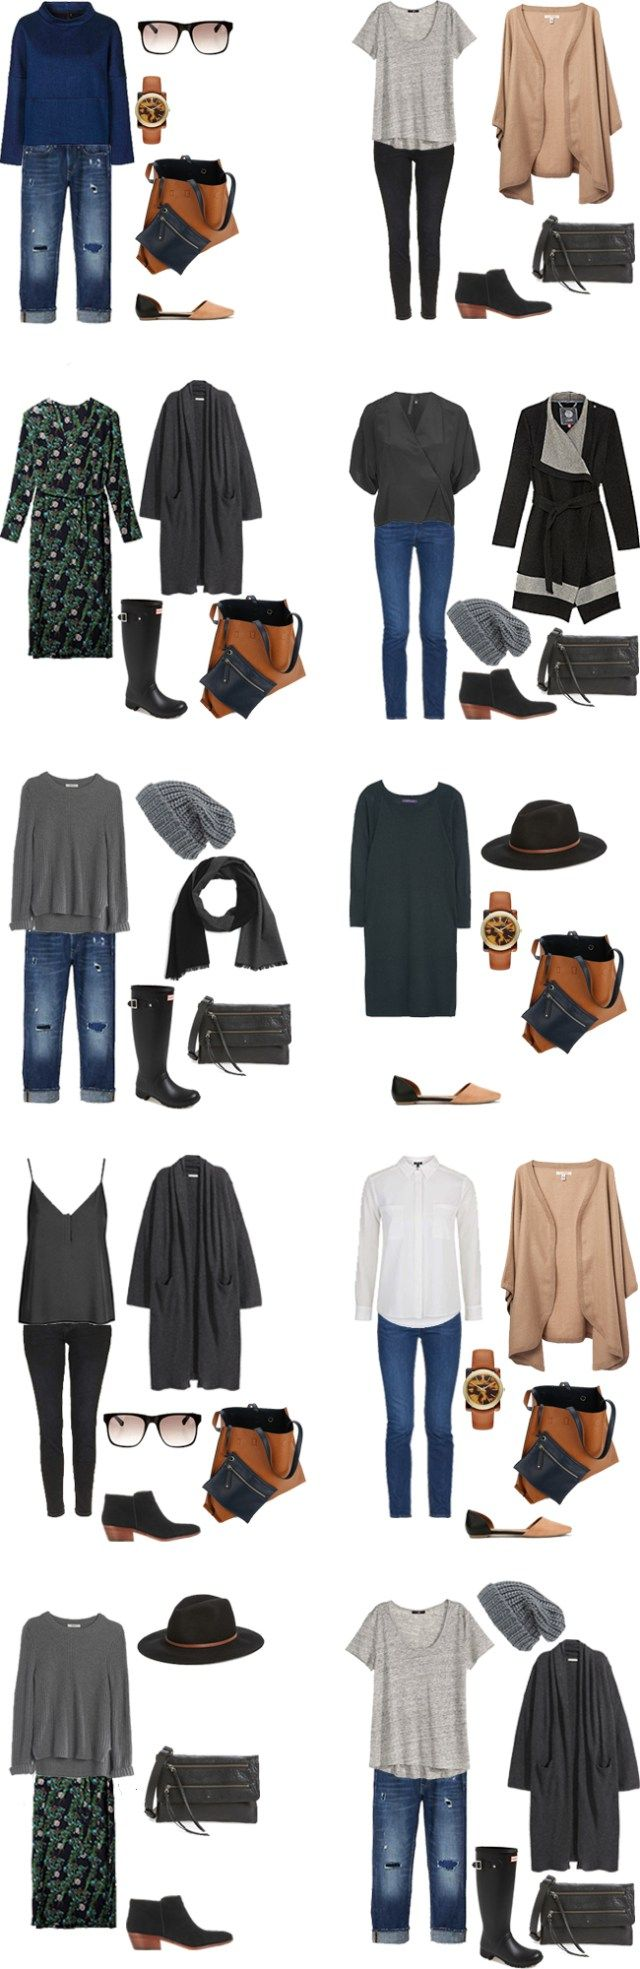 What to Wear in Italy and Switzerland Outfits 1-10 #travellight #packinglight…